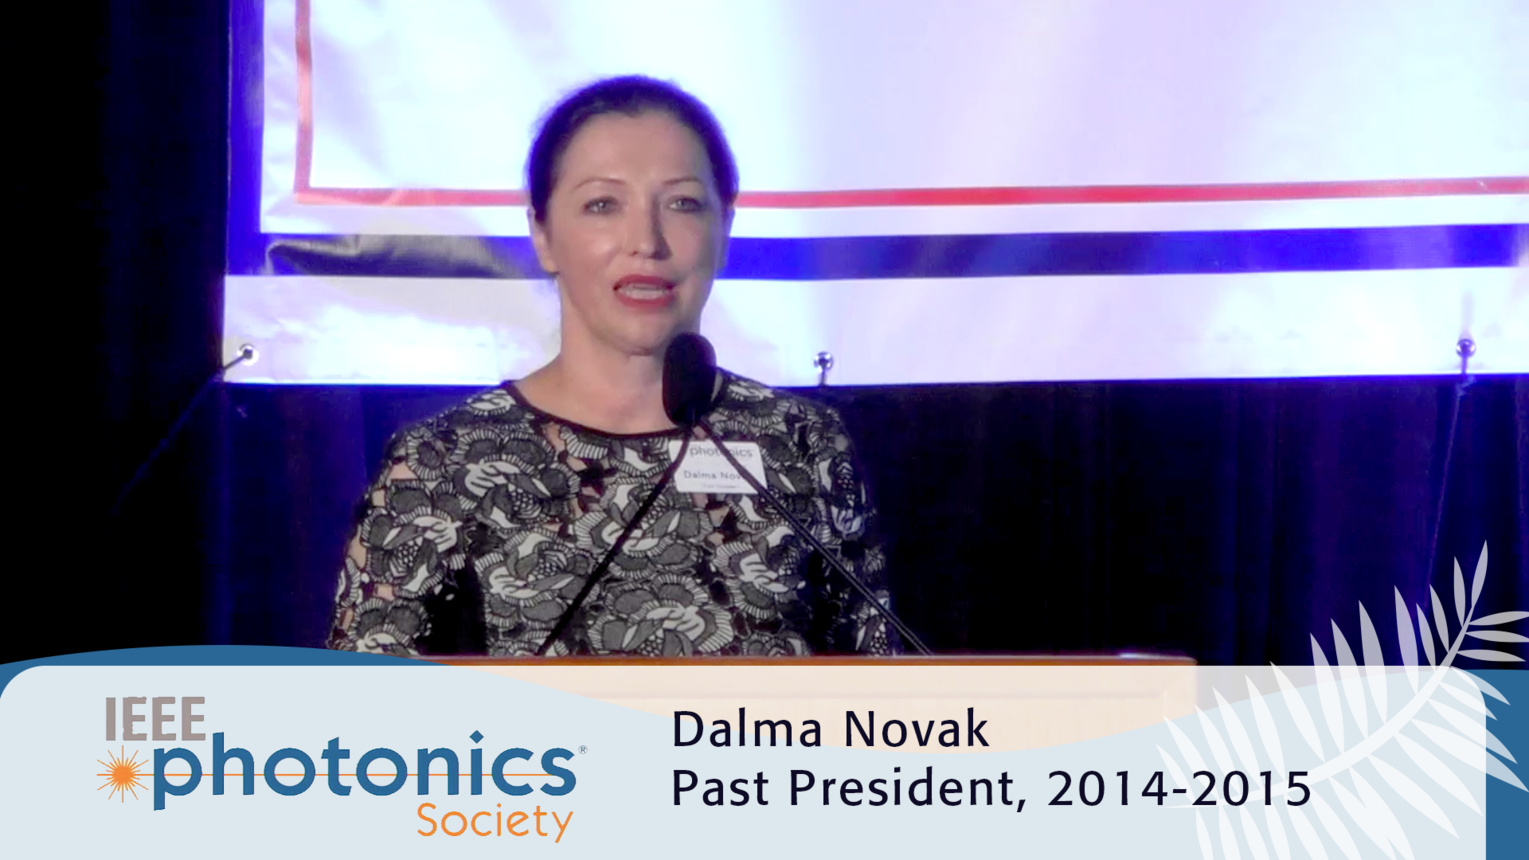 Intro to Women in Photonics - 2016 IEEE Photonics Conference